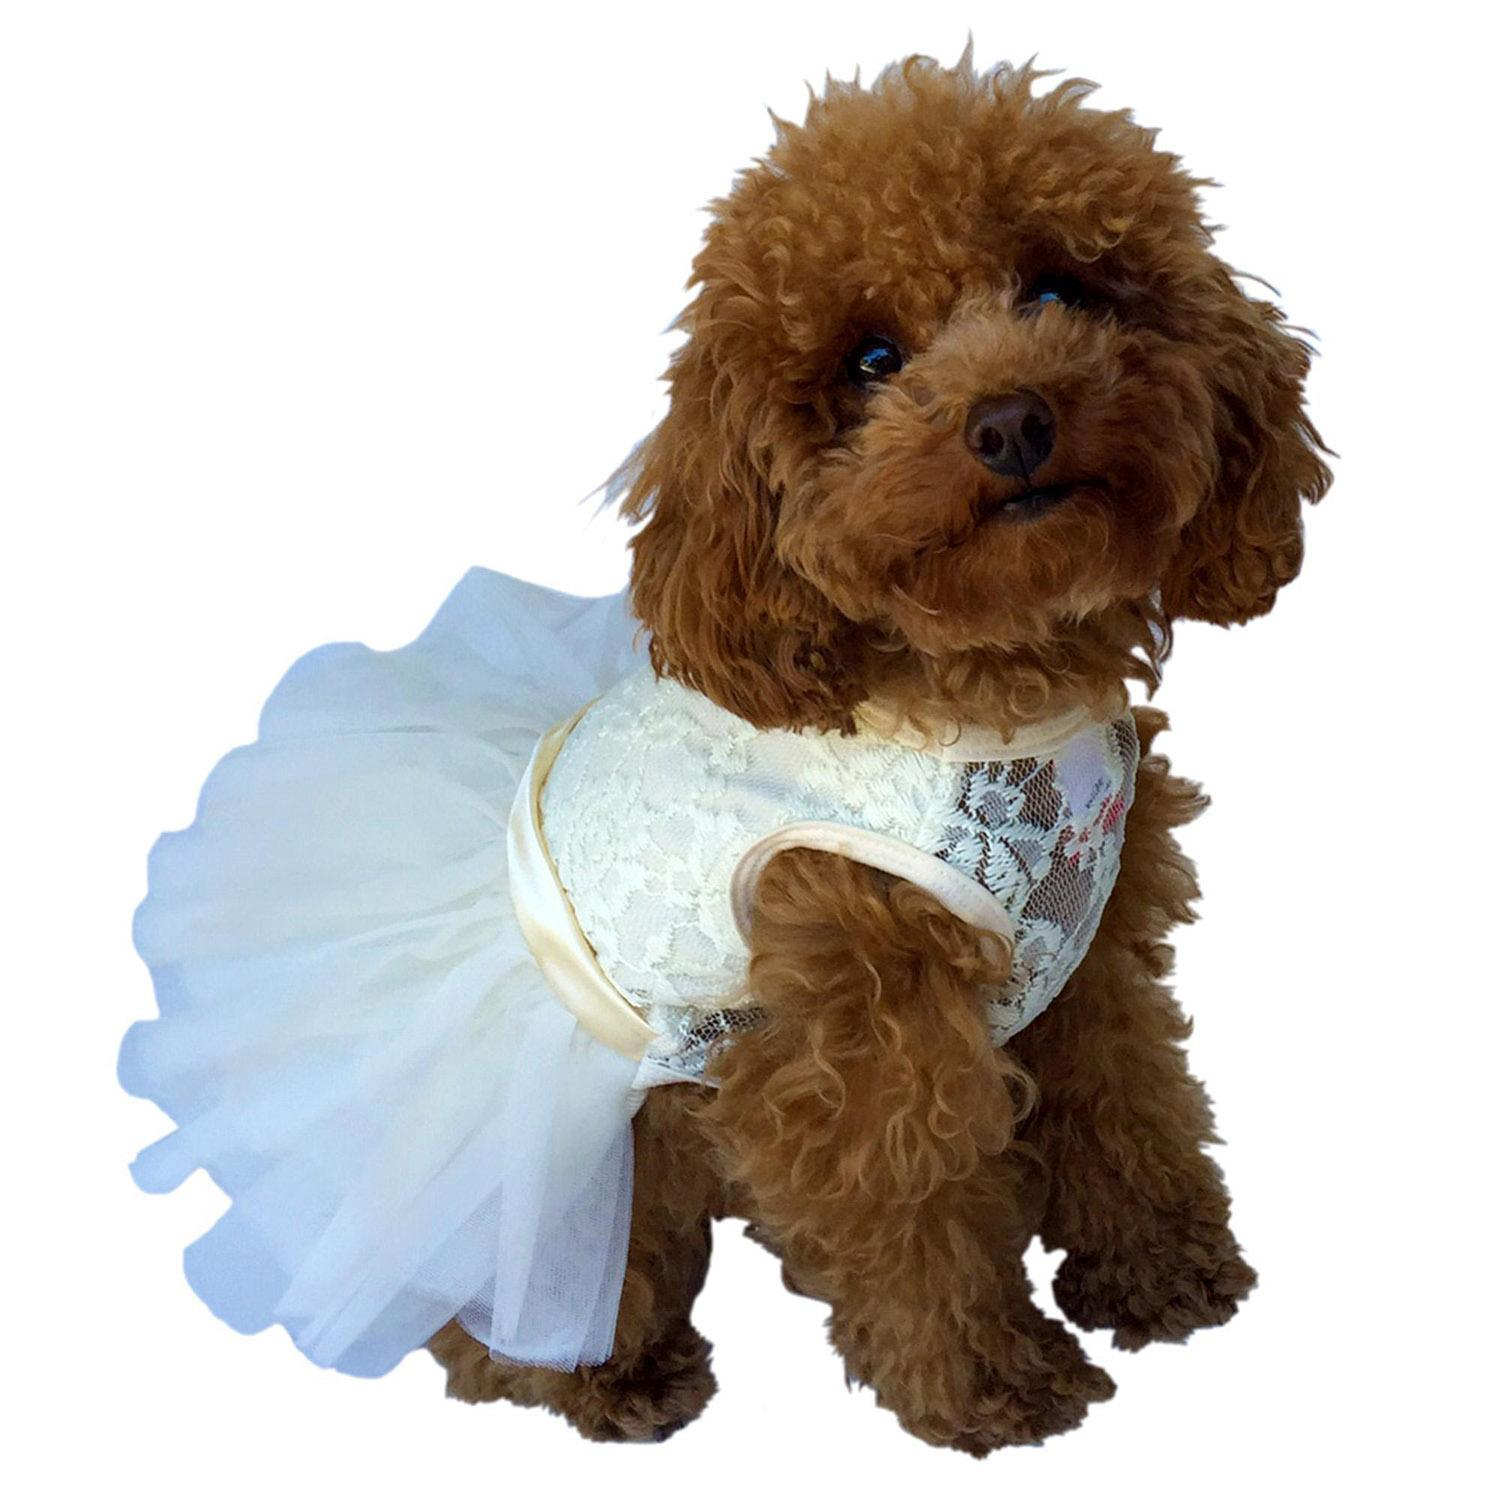 Fufu Tutu Lace Dog Dress - Ivory